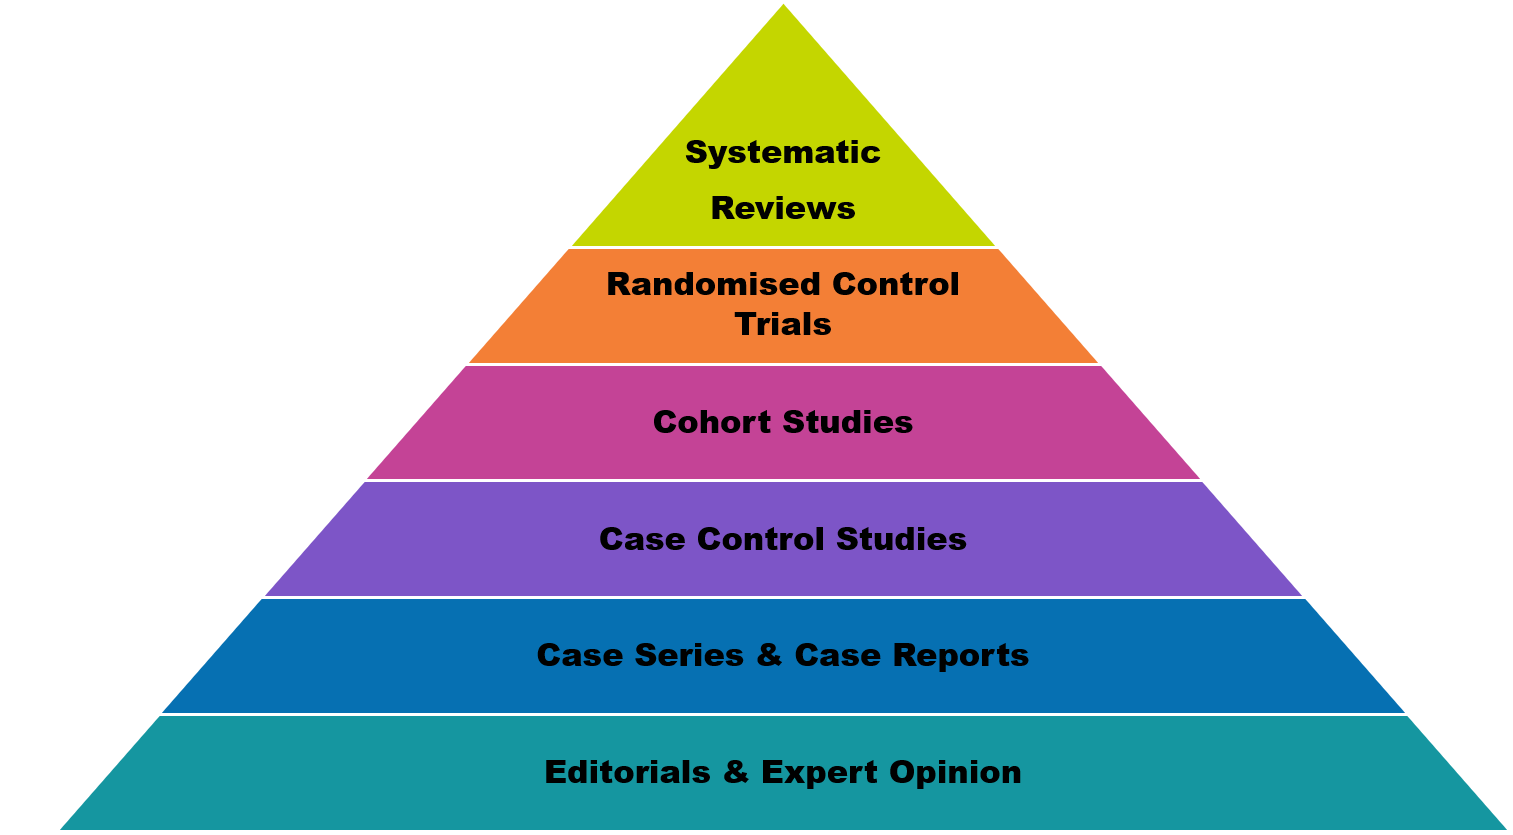 Hierarchy of evidence pyramid: top to bottom, systematic reviews, randomised control trials, cohort studies, case control studies, case series and reports, editorials and expert opinion